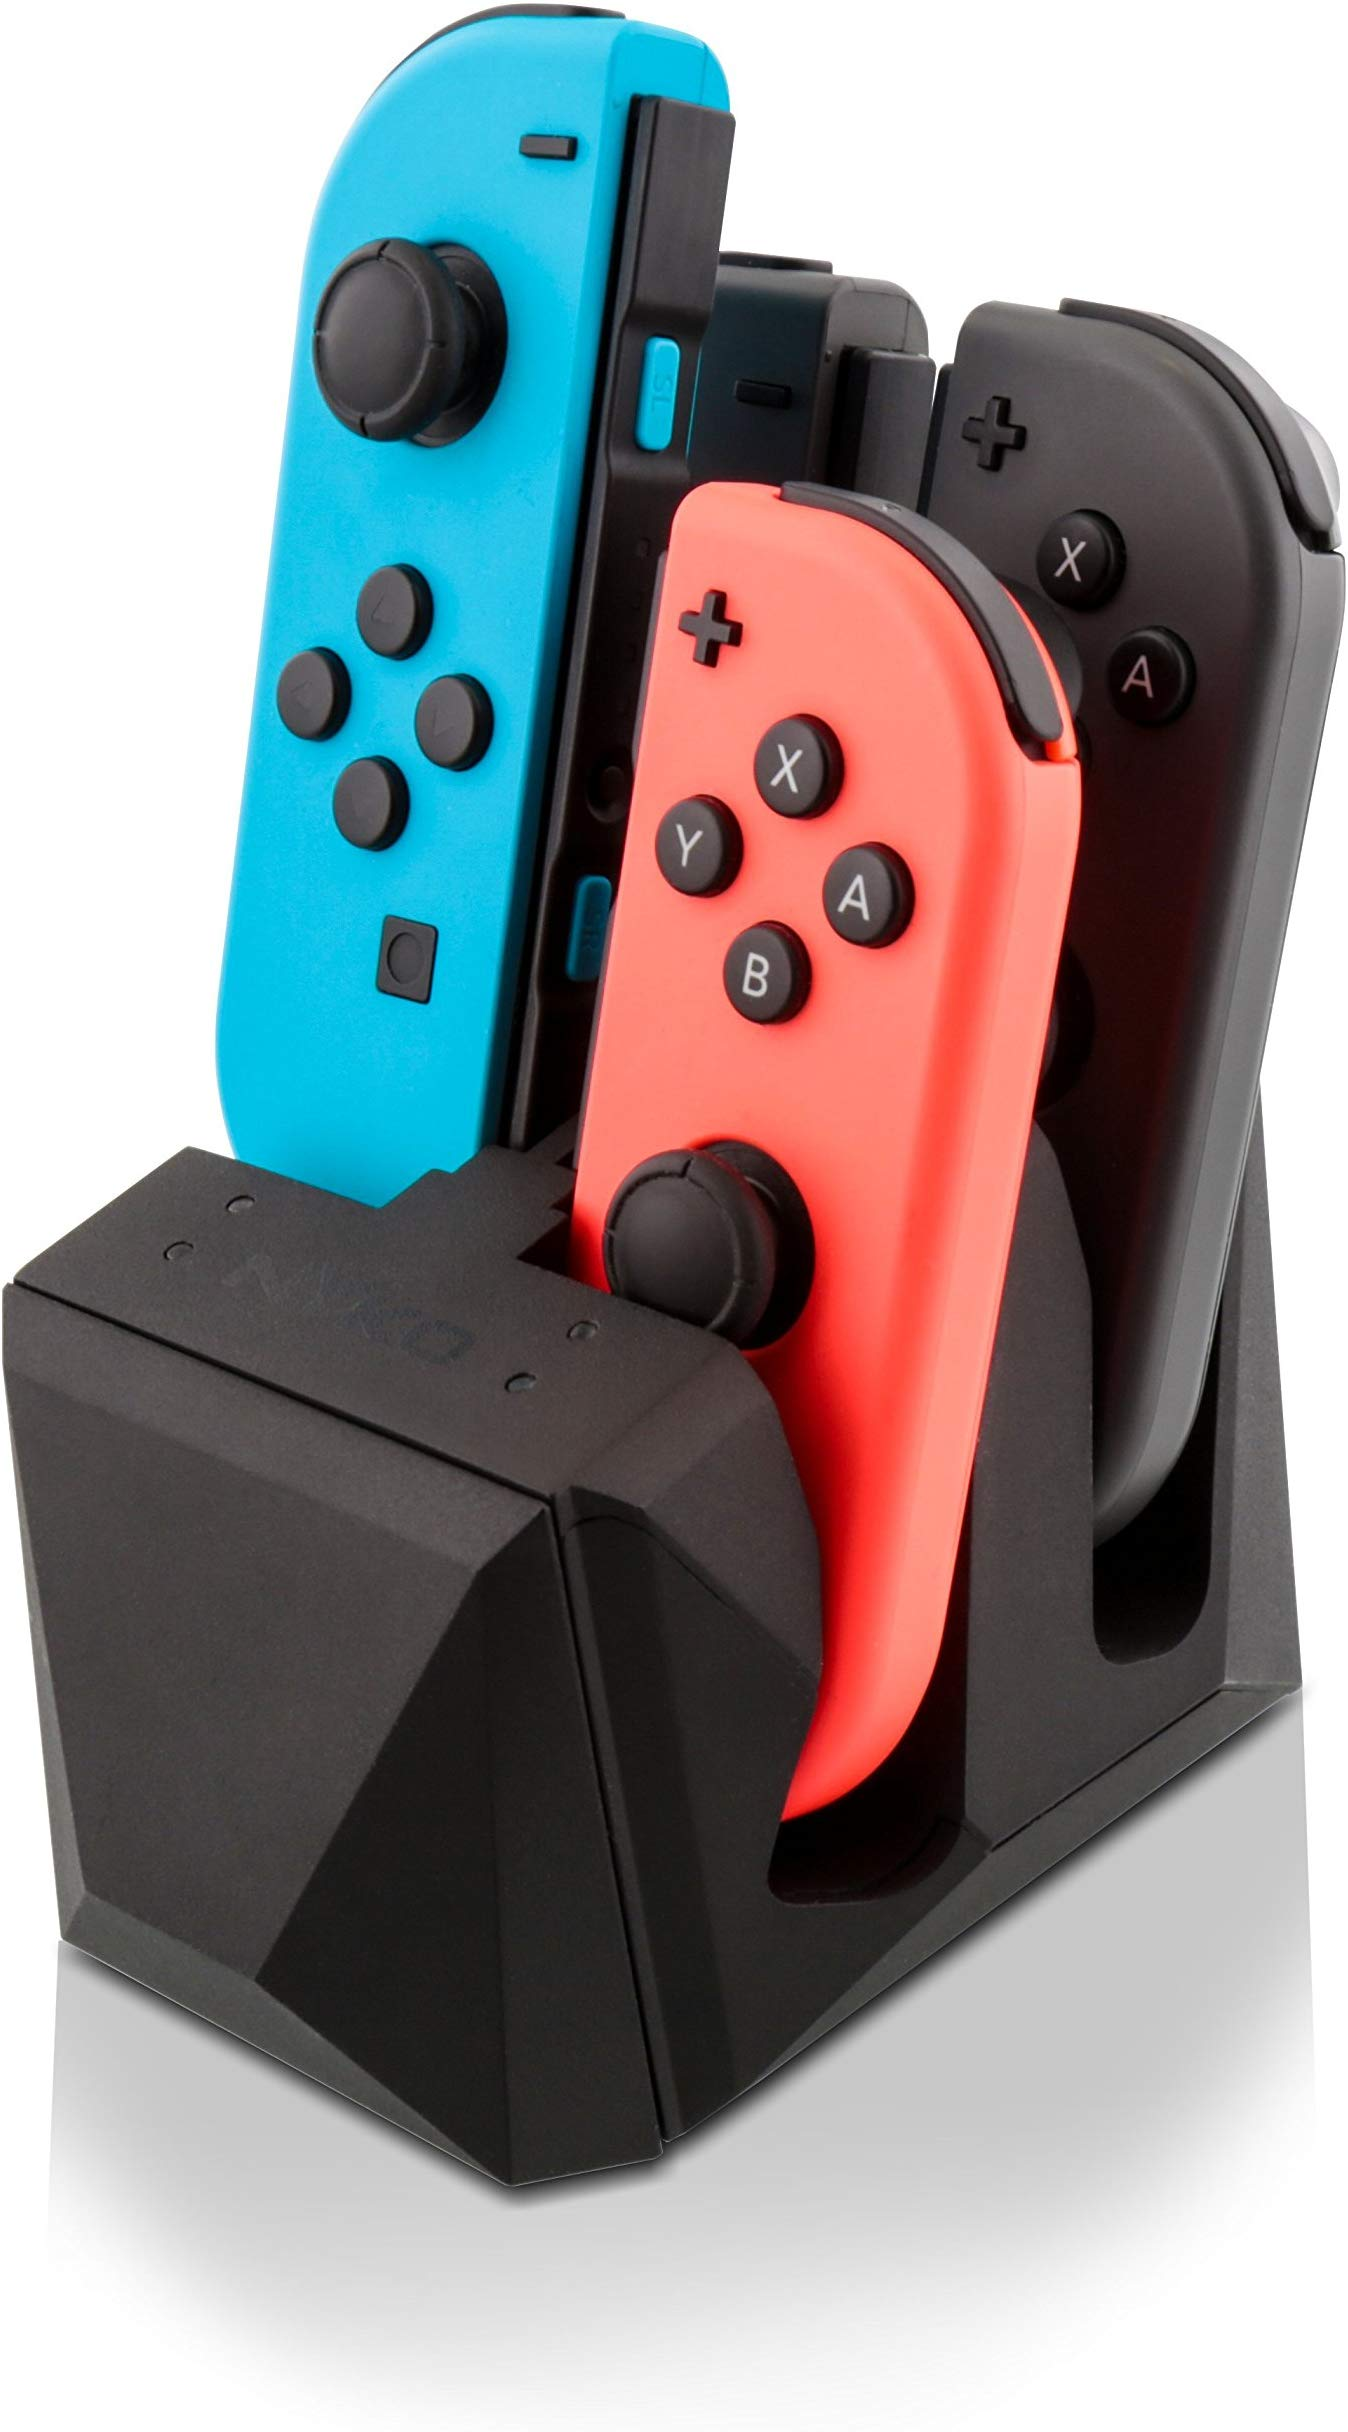 Details about Nyko Charge Block 4 Port Joy-Con Charge Station Dock Charger  for Nintendo Switch